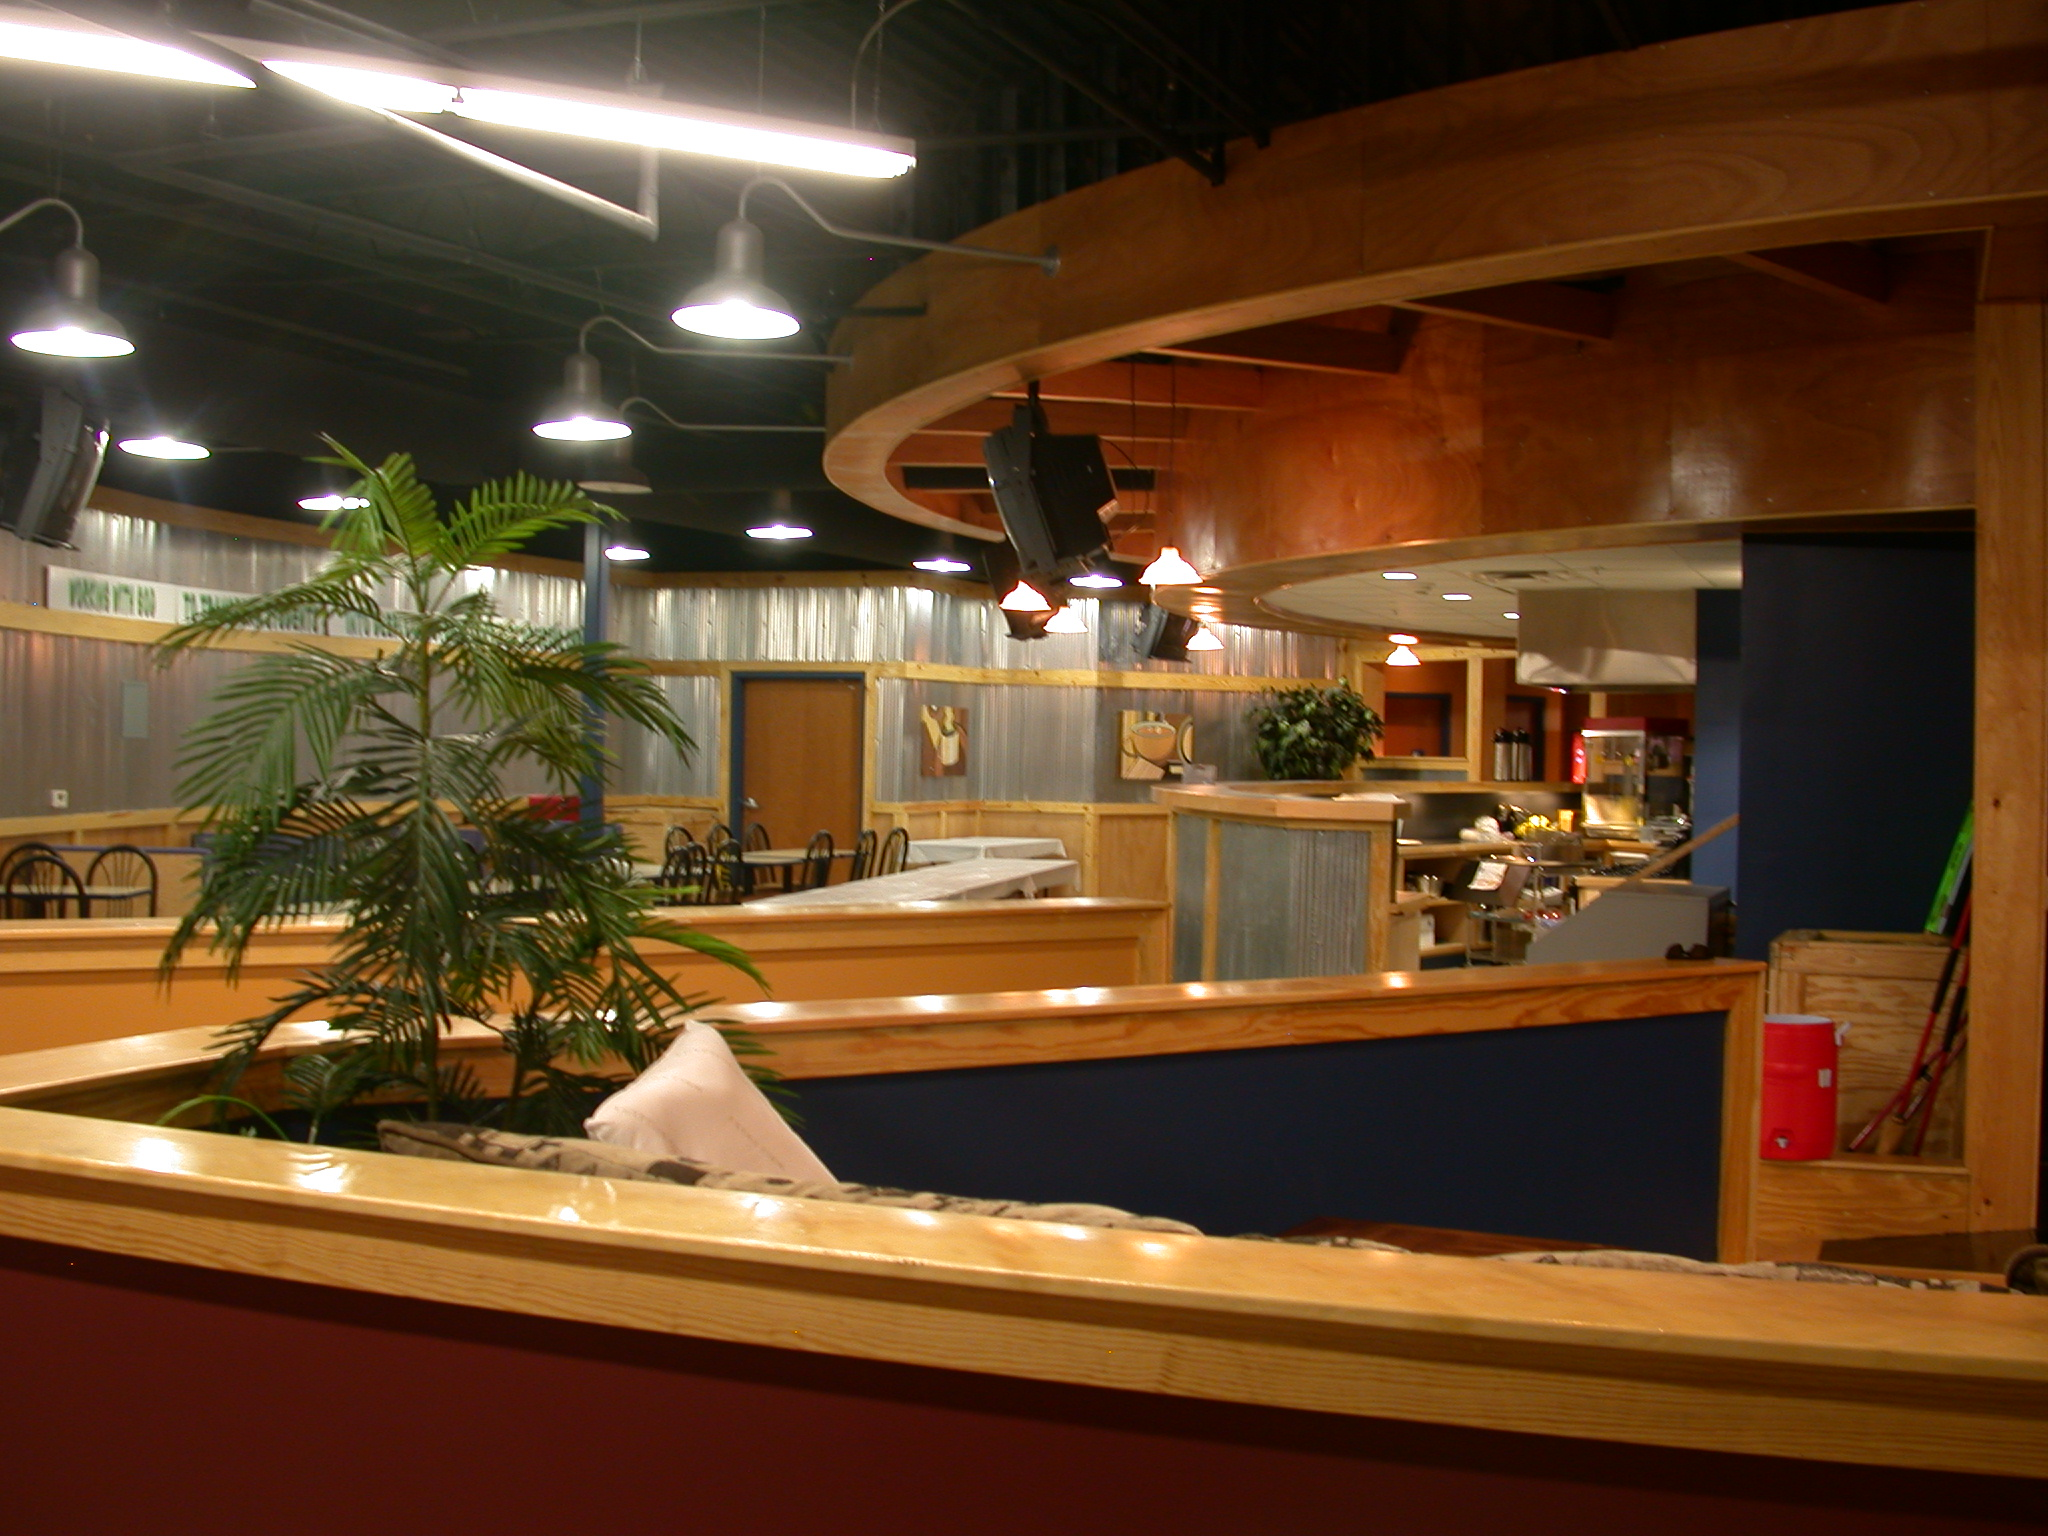 Food Service Architecture and Planning